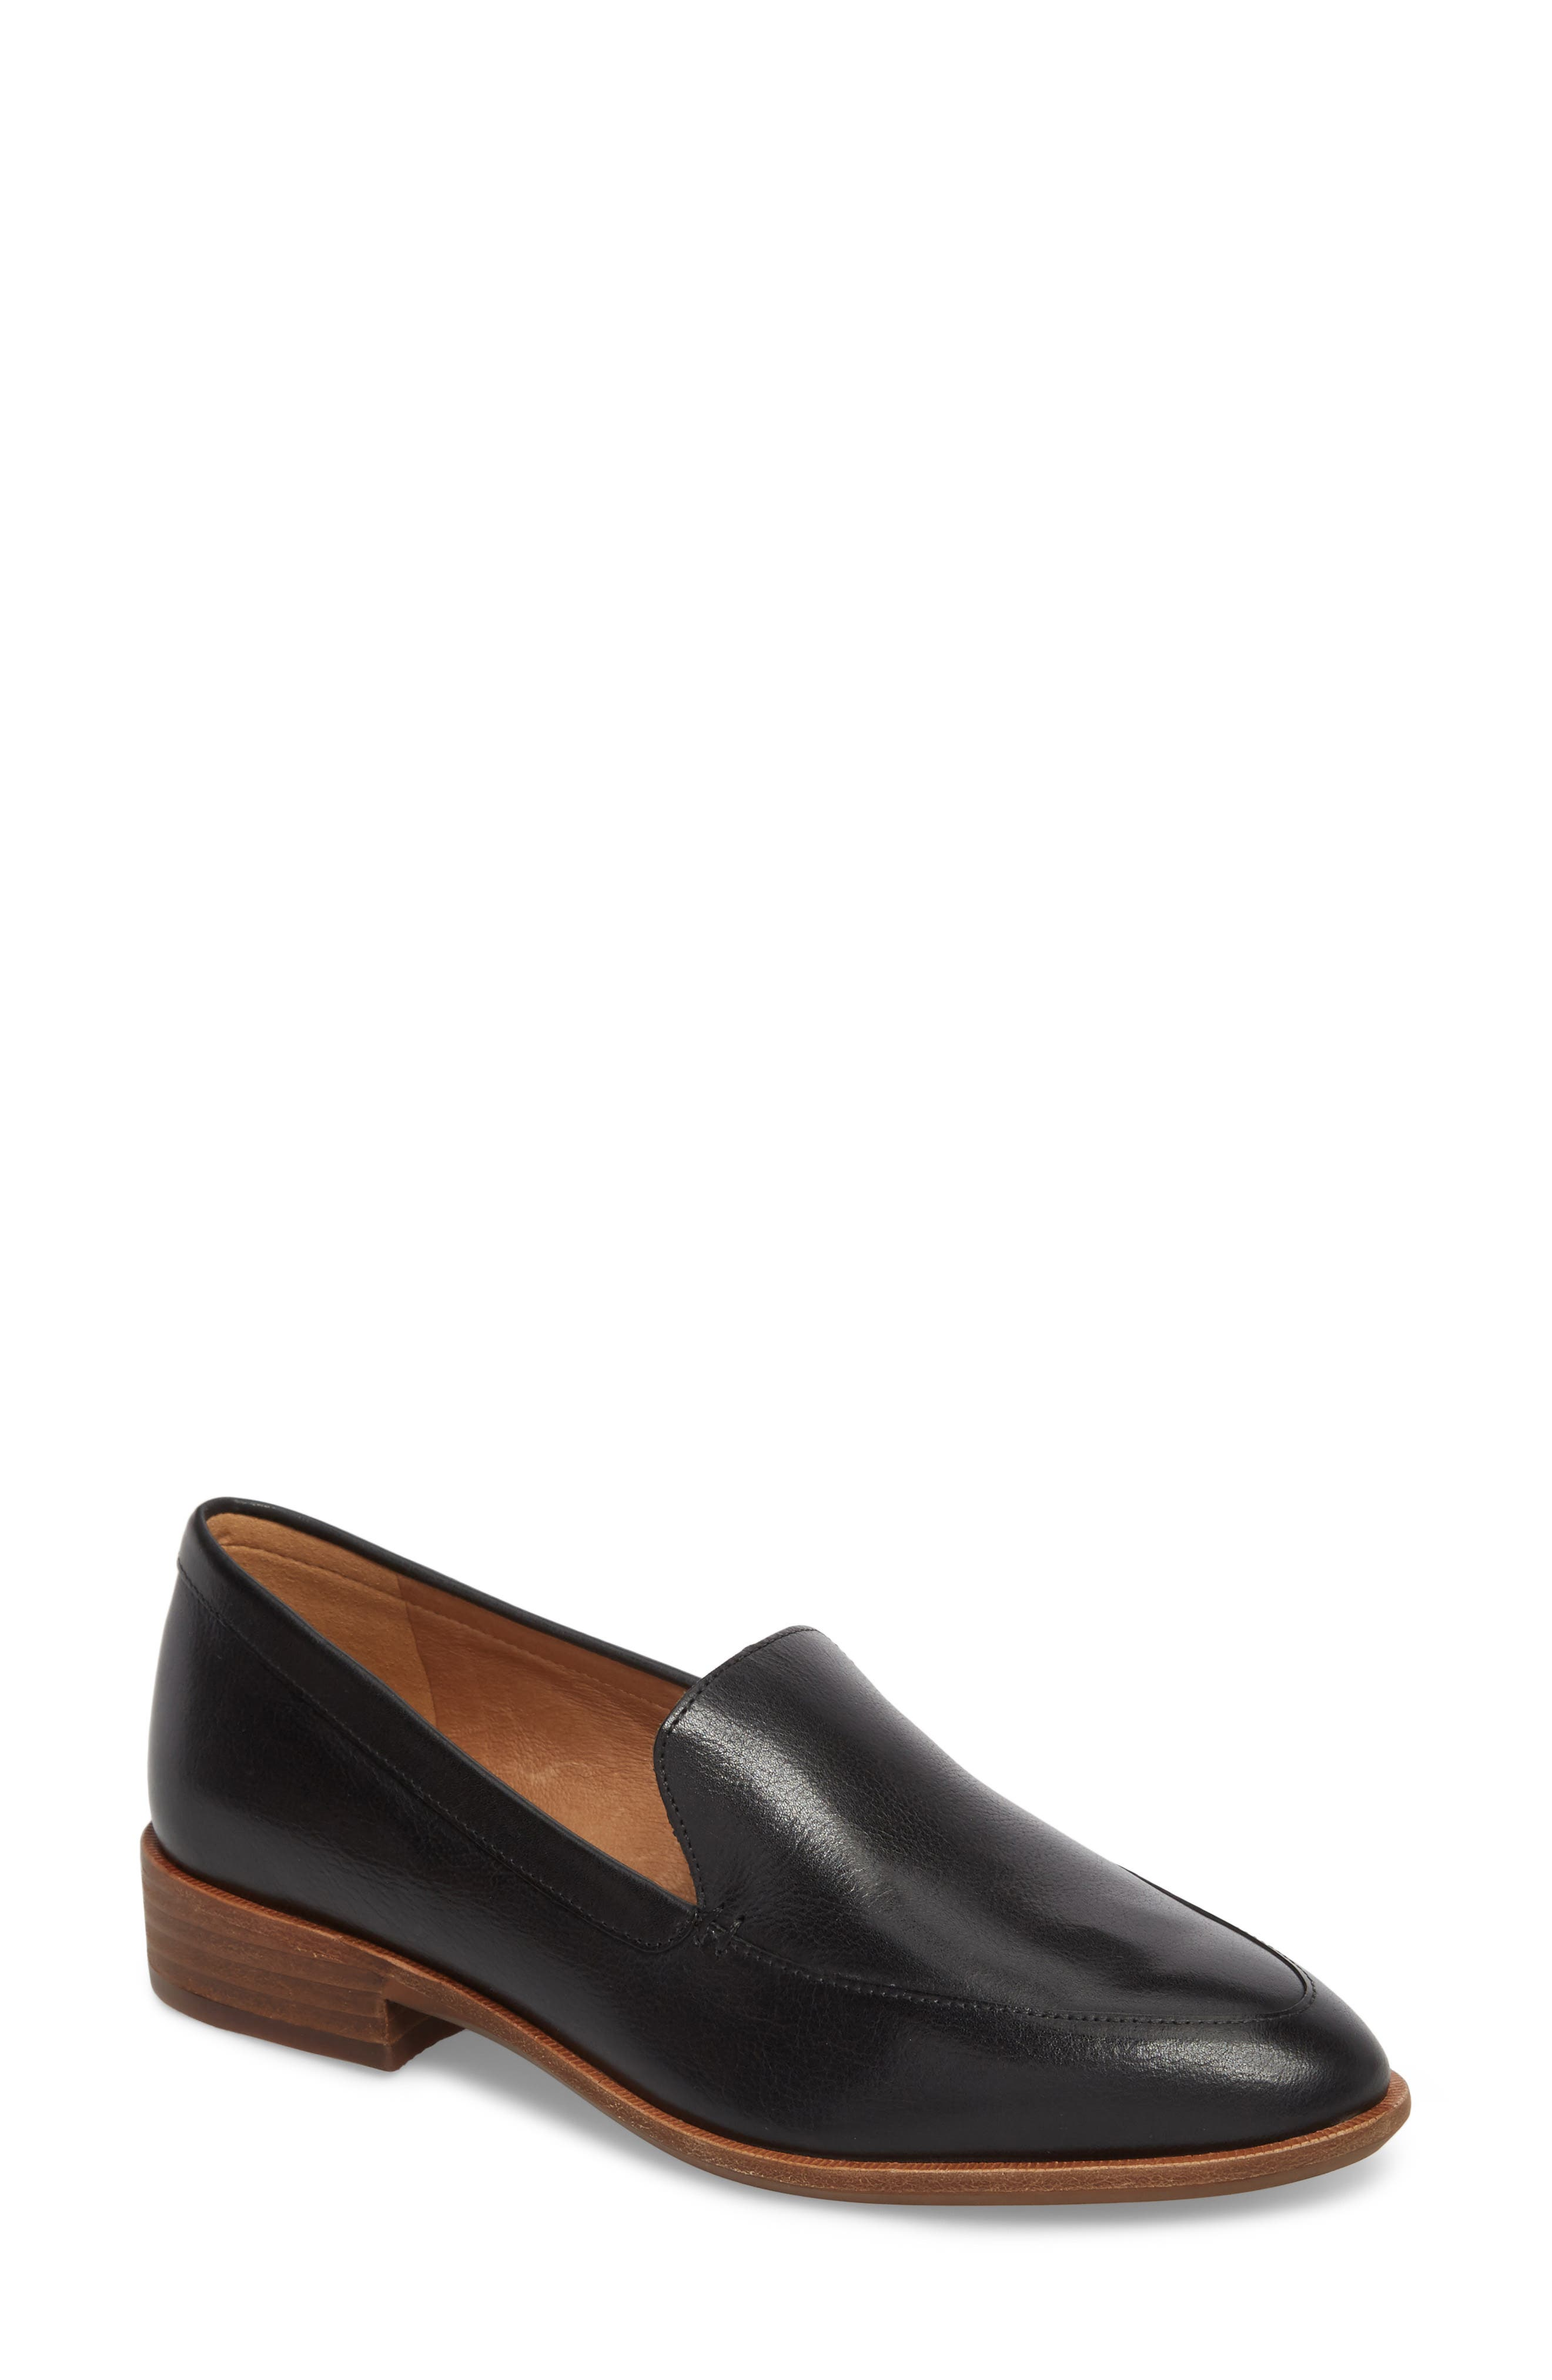 MADEWELL The Frances Loafer, Main, color, TRUE BLACK LEATHER